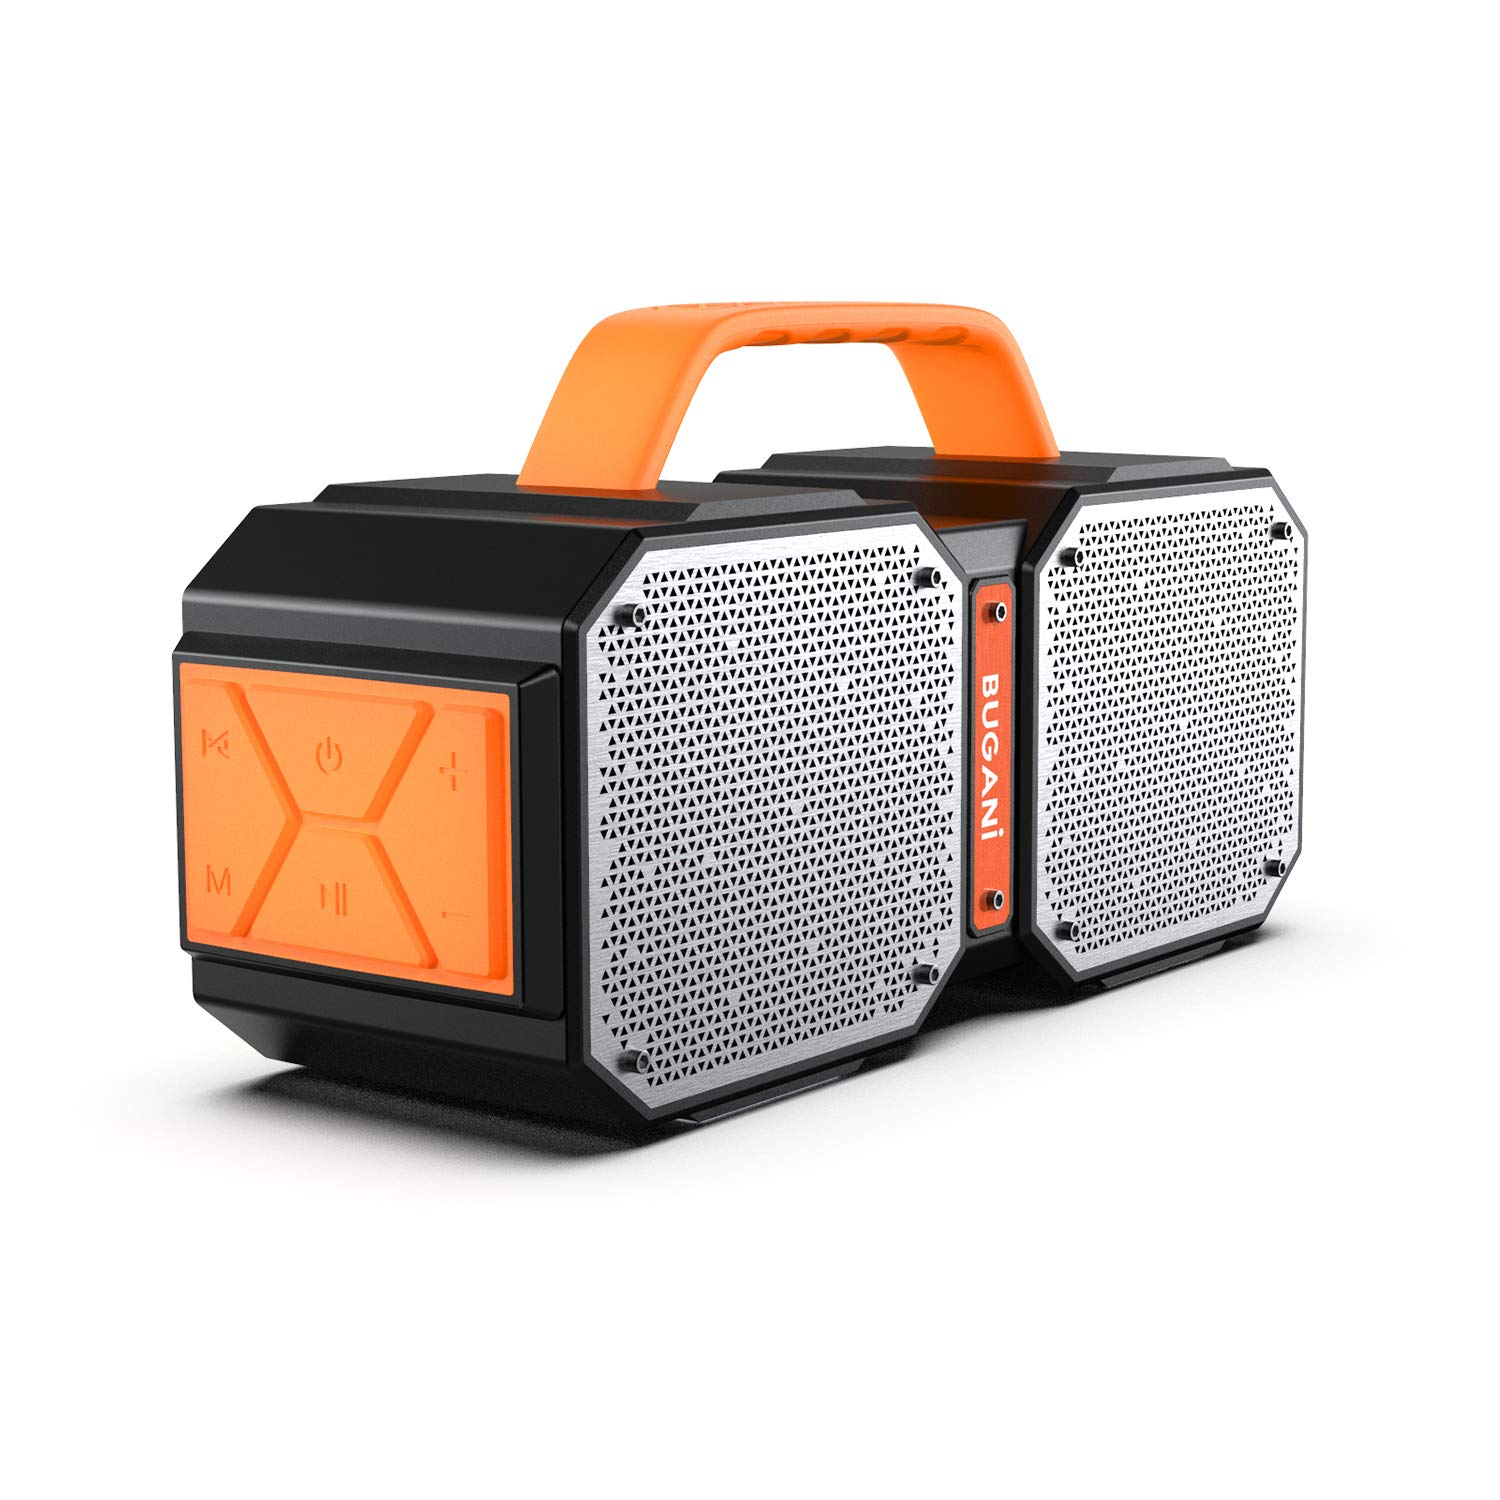 Bluetooth Speakers. Waterproof Outdoor Speakers Bluetooth 5.0 .40W Wireless Stereo Pairing Booming Bass Speaker. 2400 Minutes Playtime with Charge your phone. Durable for Home Party. Camping(Black) by BUGANI